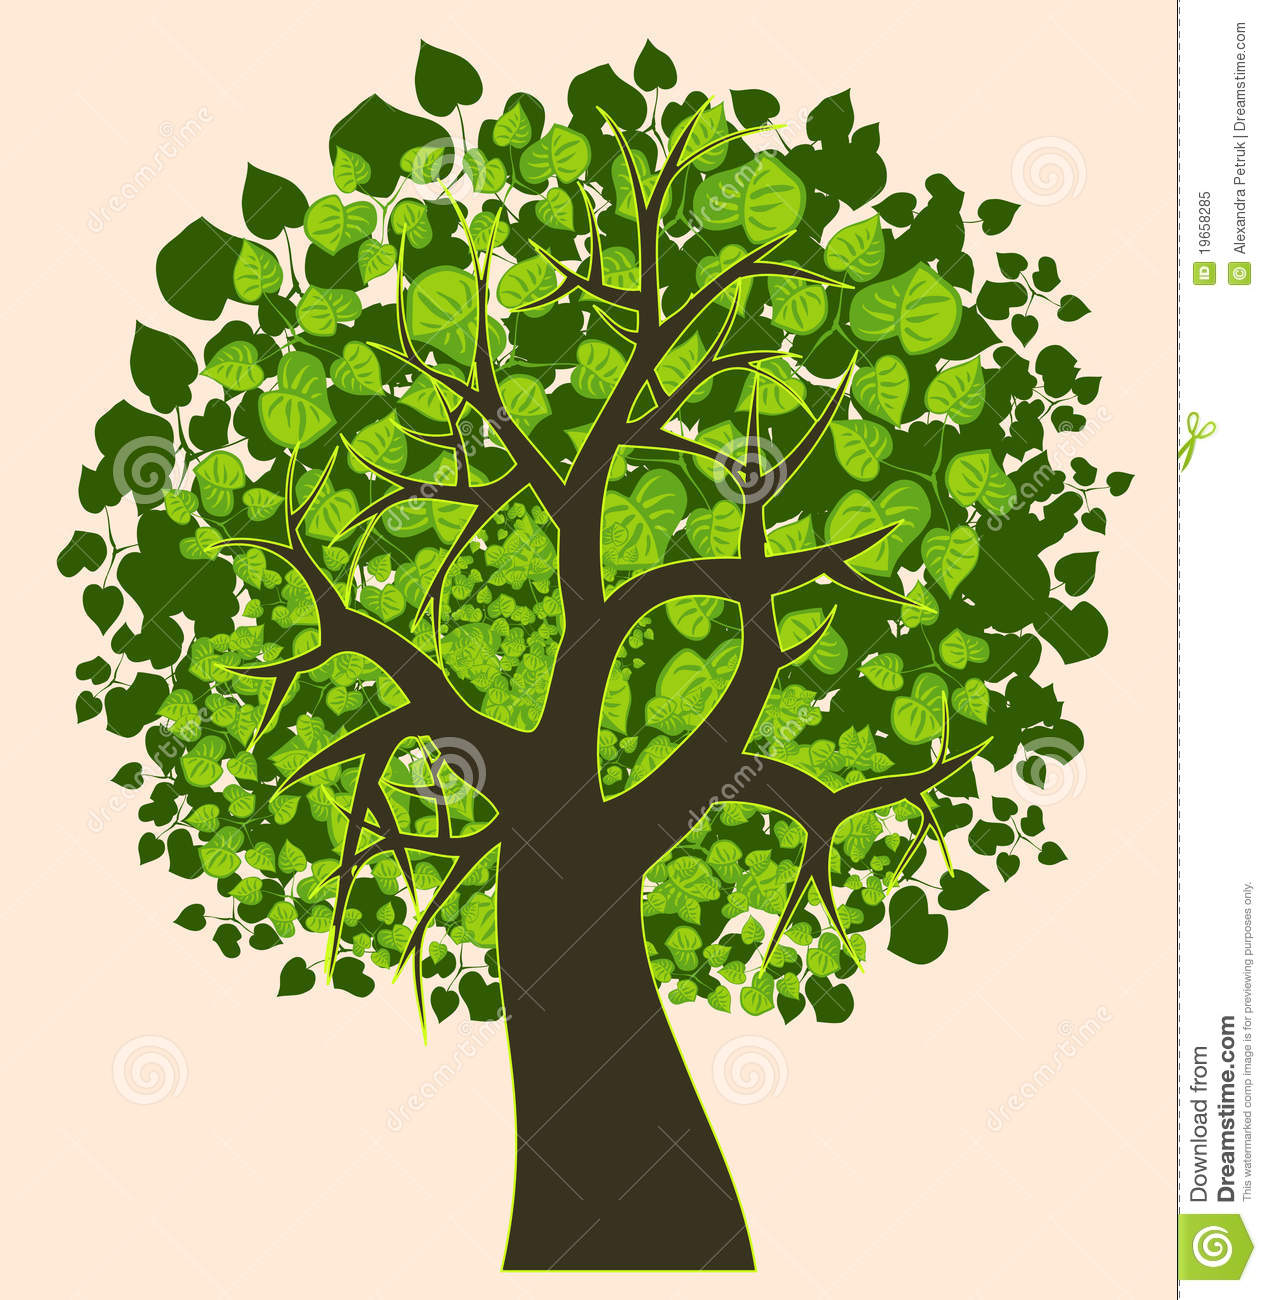 Oak Tree Drawing Illustration Of An Isolated Summer Tree Stock Vector